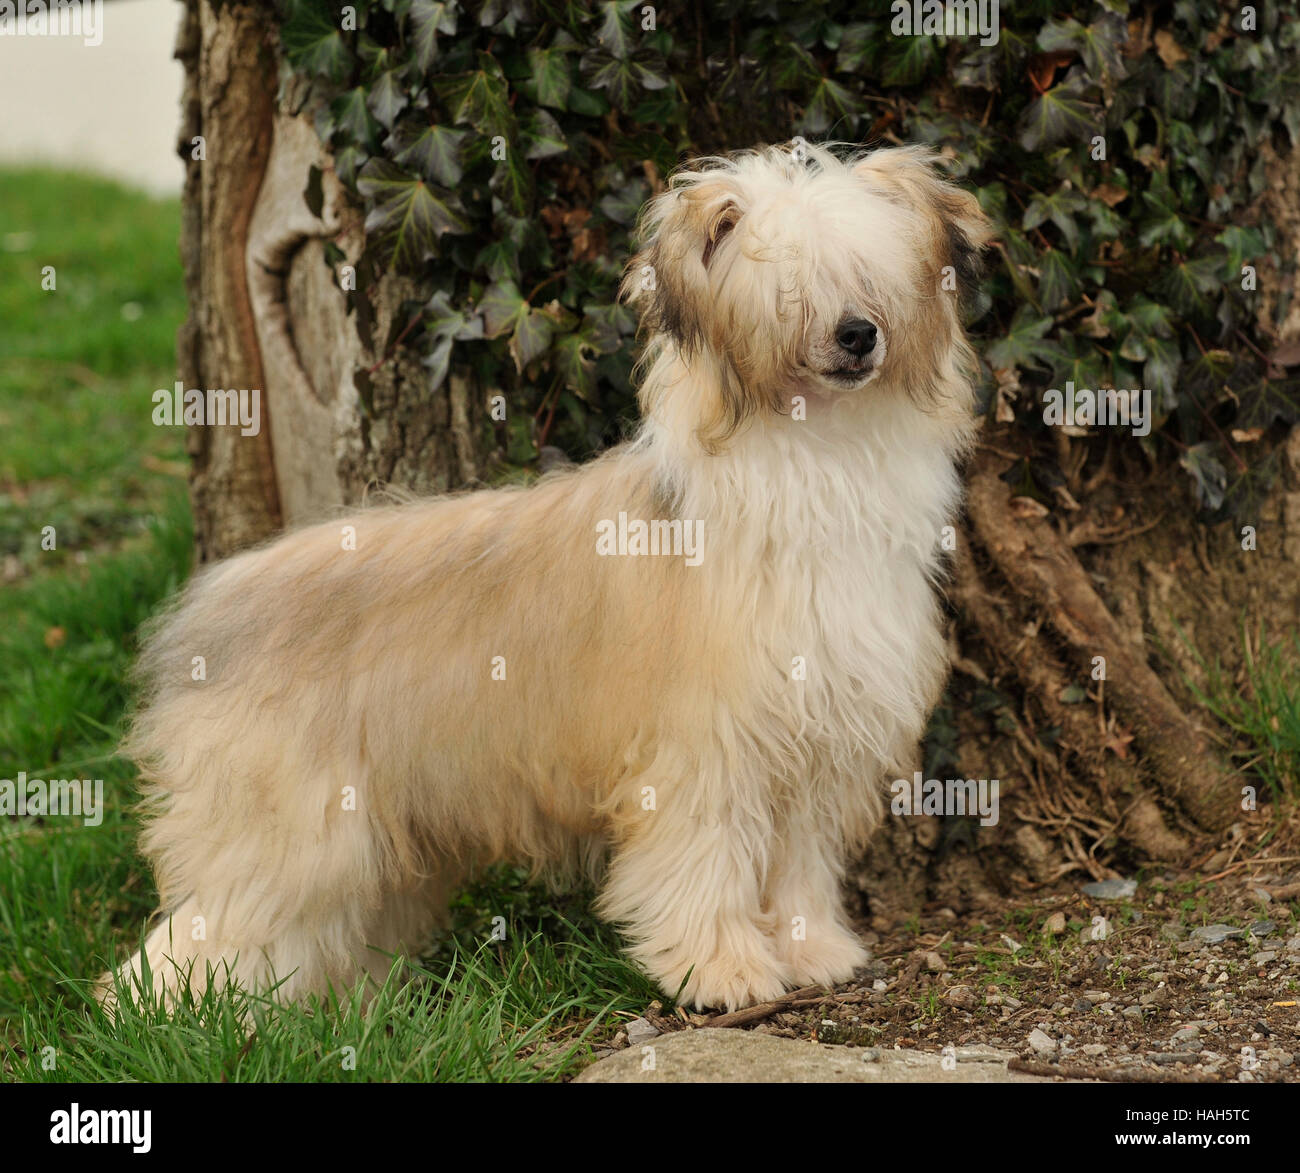 chinese crested (powderpuff) - Stock Image